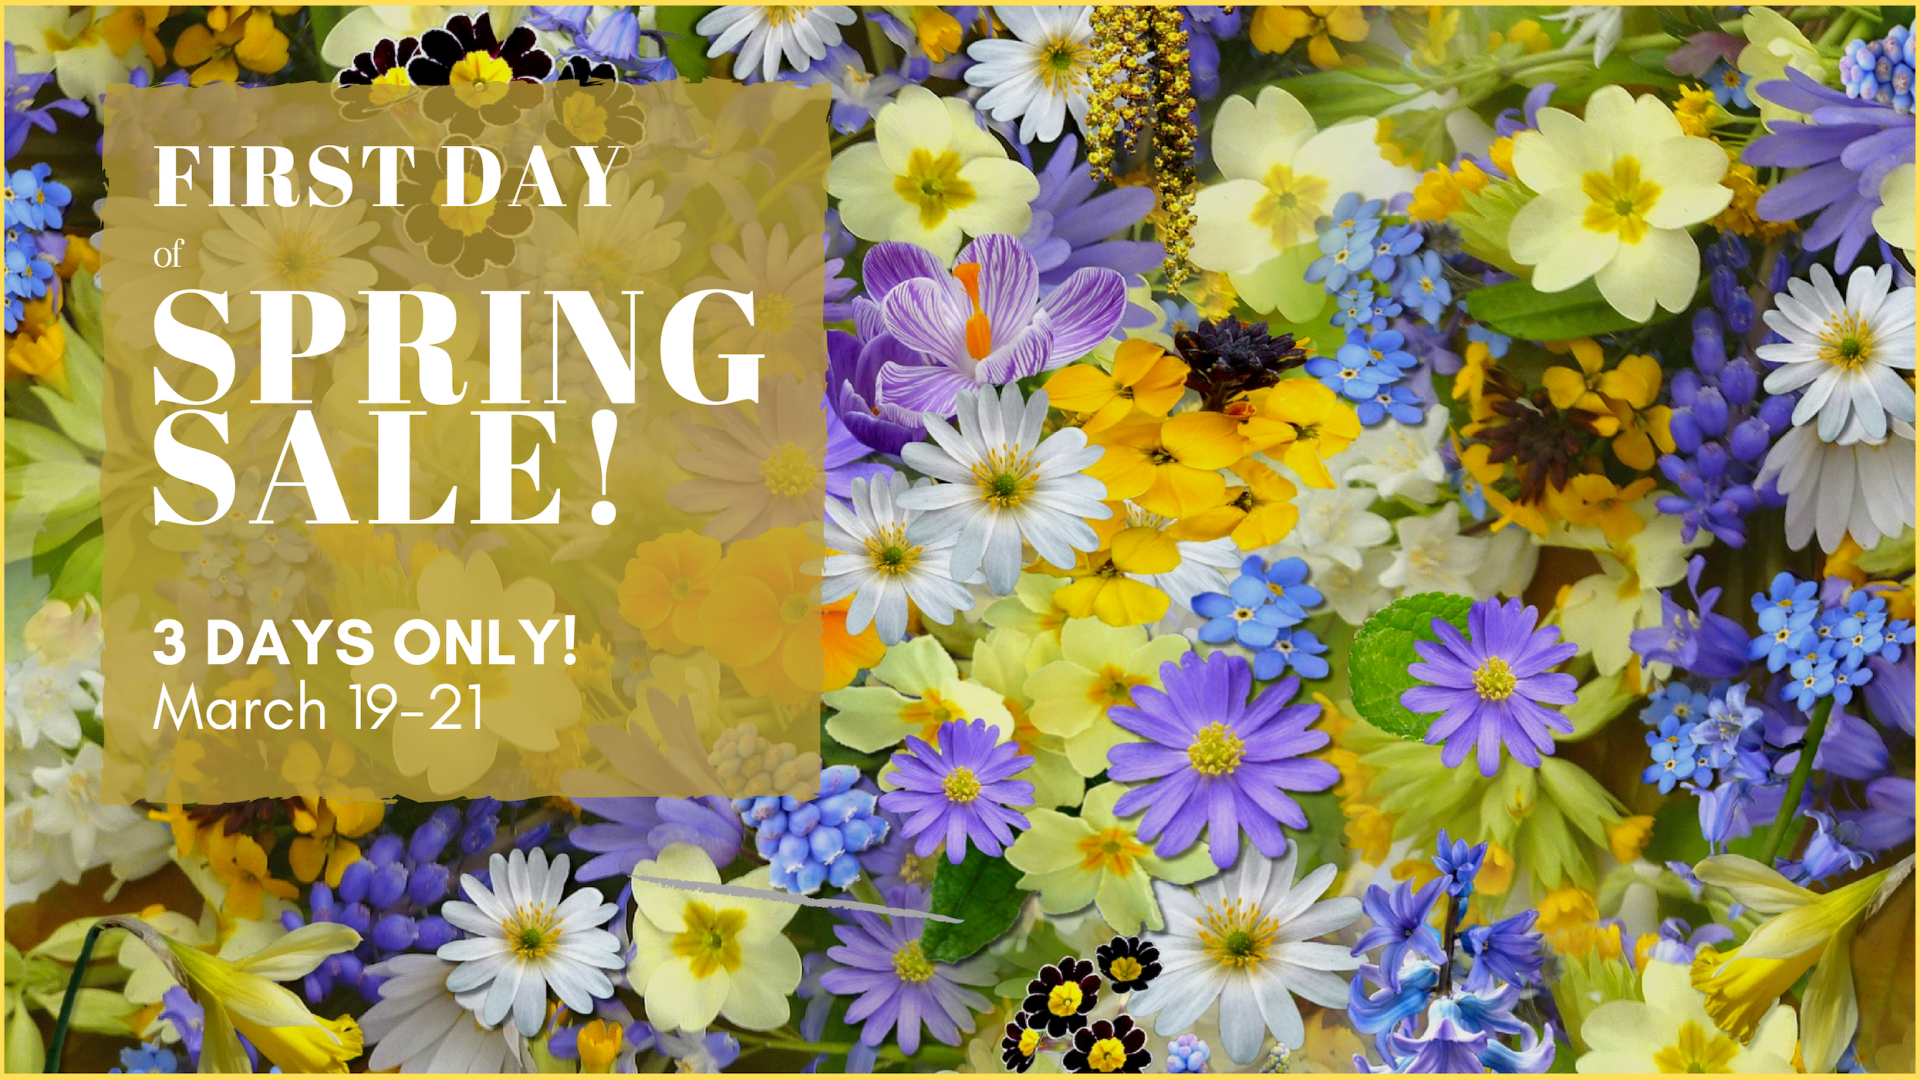 First DAy of Spring sale. March 19-21